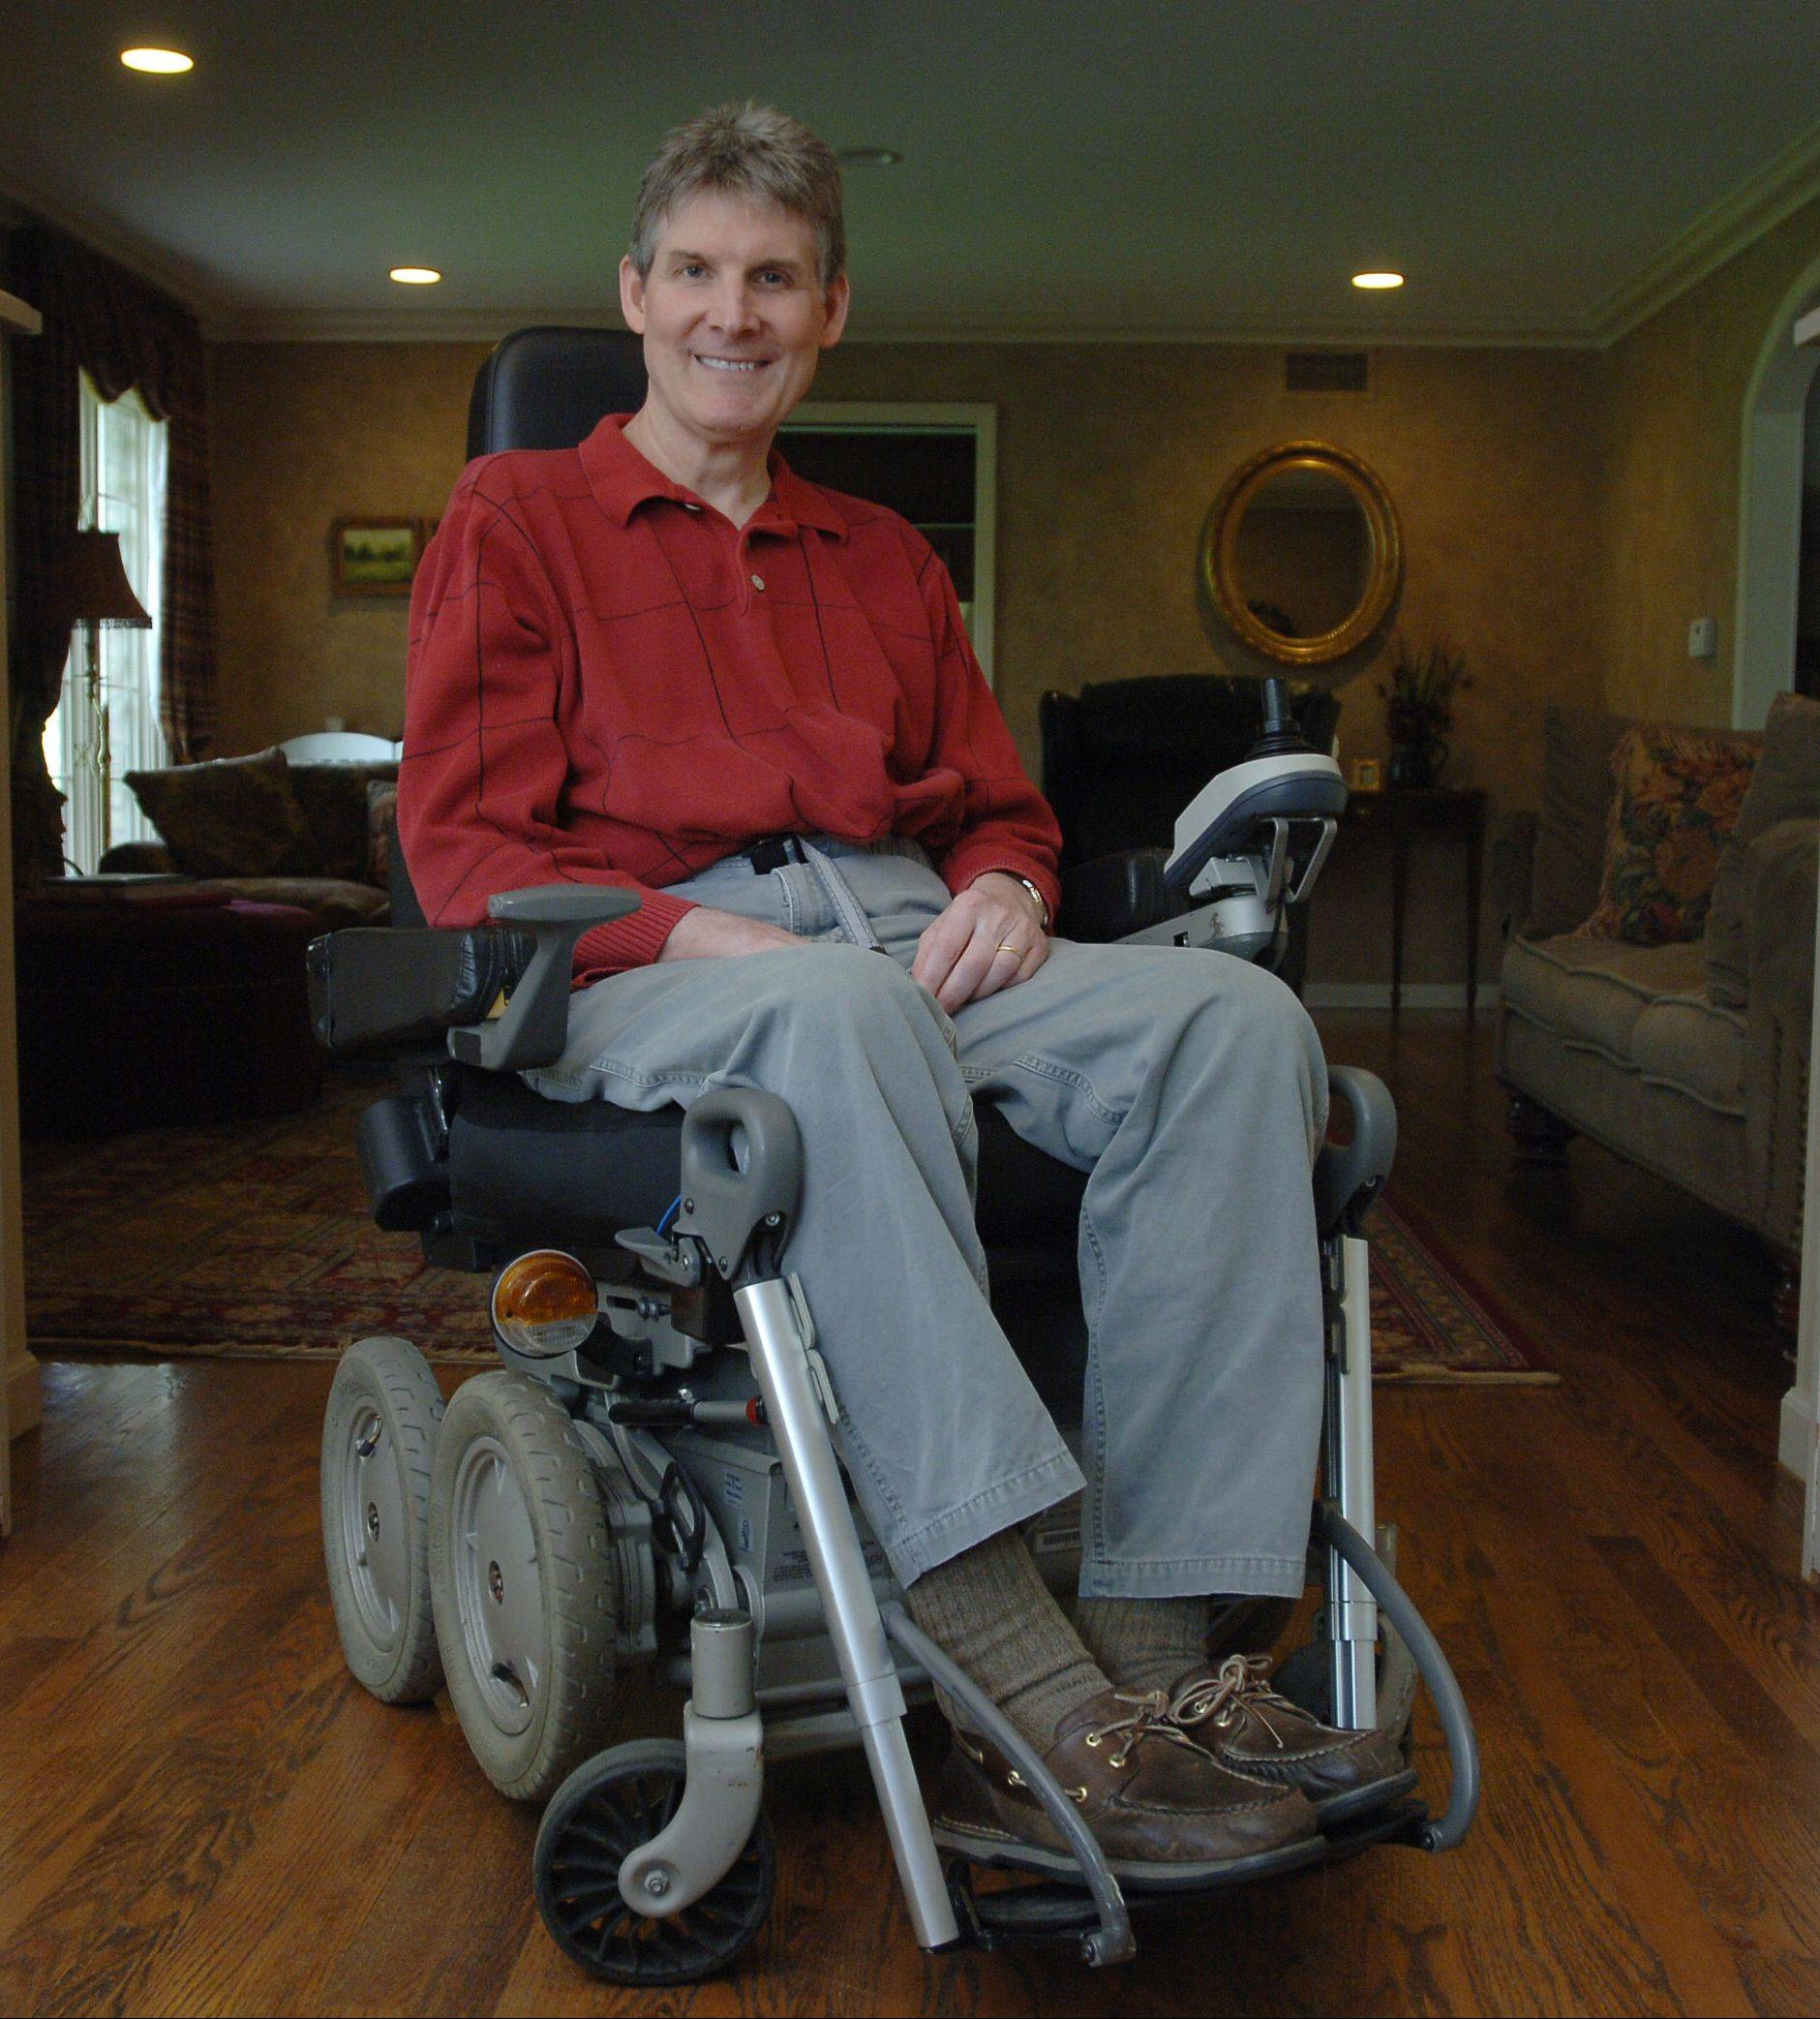 While he says he appreciates his iBOT wheelchair with Segway technology that allows him to go up stairs, Lincolnshire's Bob Gregory is hosting a walk on May 6 to raise funds to find a cure for multiple sclerosis and get him back on his feet.